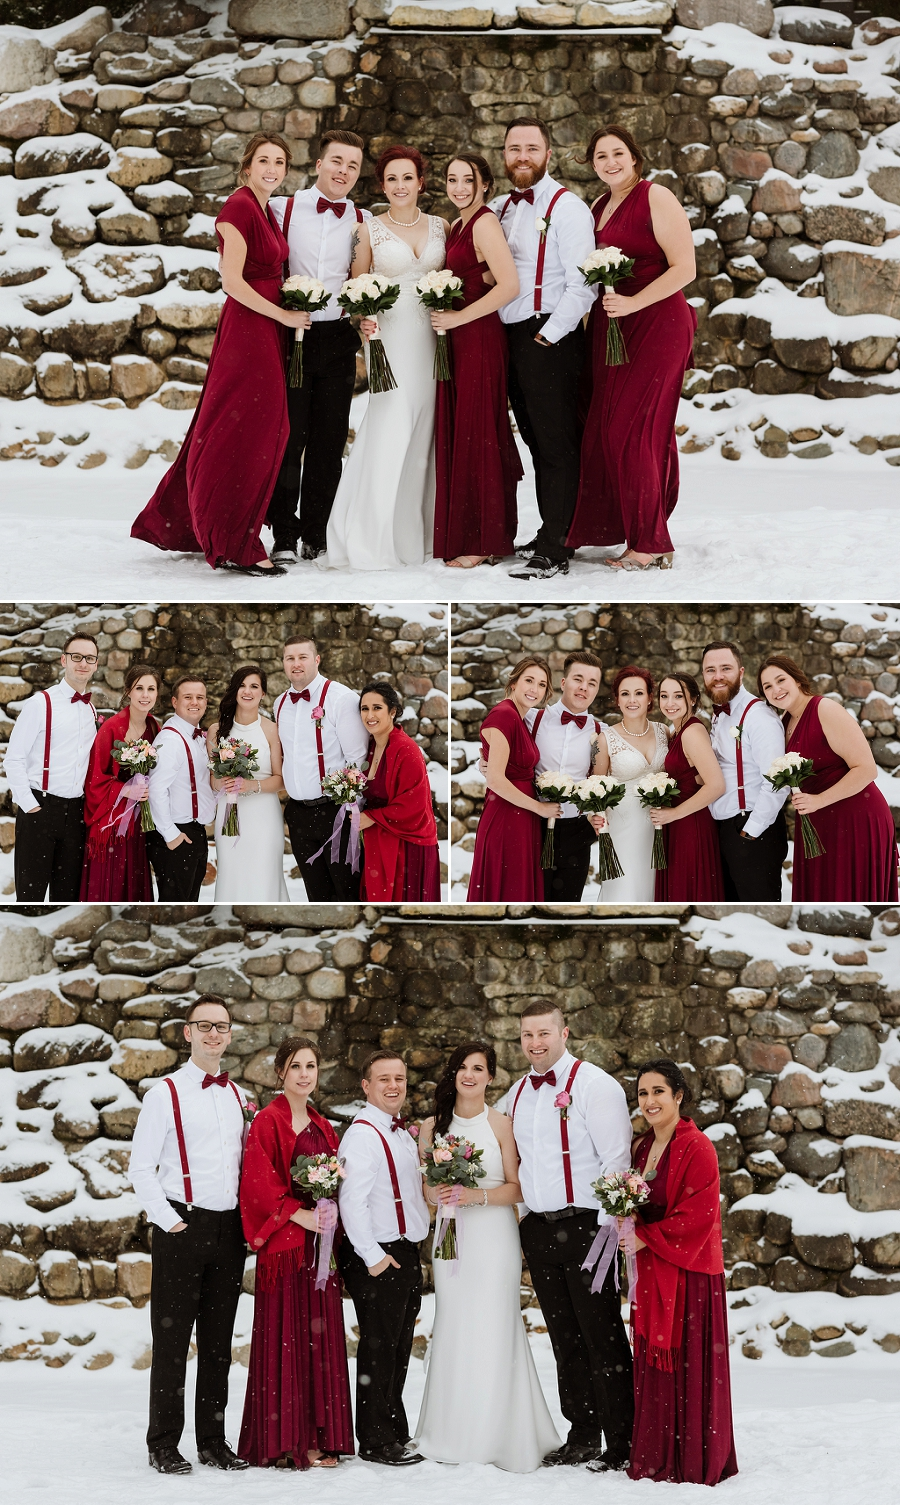 mixed gender wedding party for same sex wedding